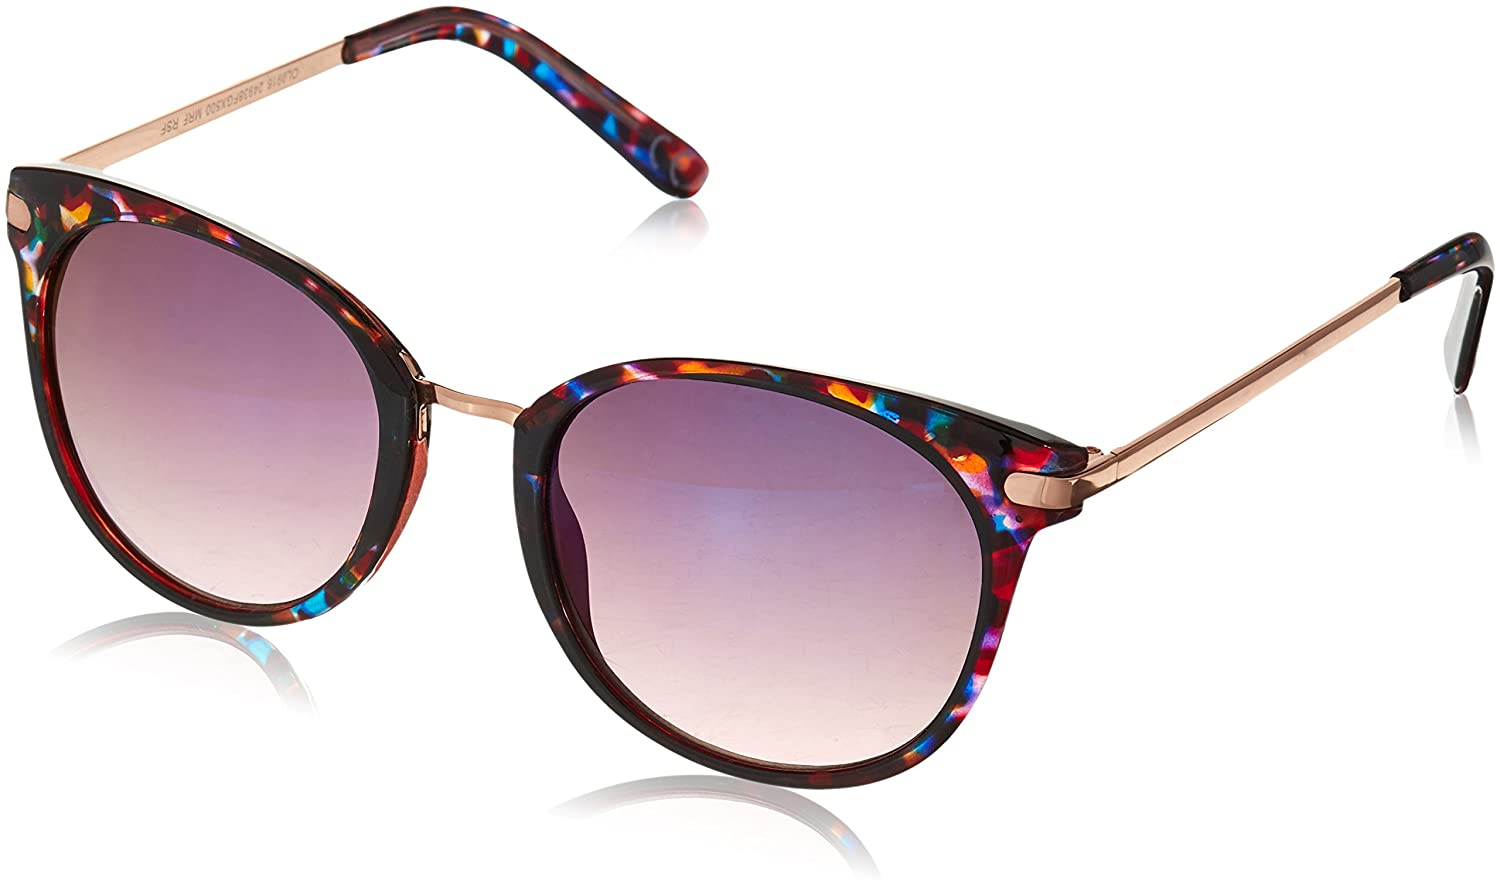 Foster Grant Women's 24938 Purple Round Sunglasses, Puple/Pink, 52 mm 10237023.RSF